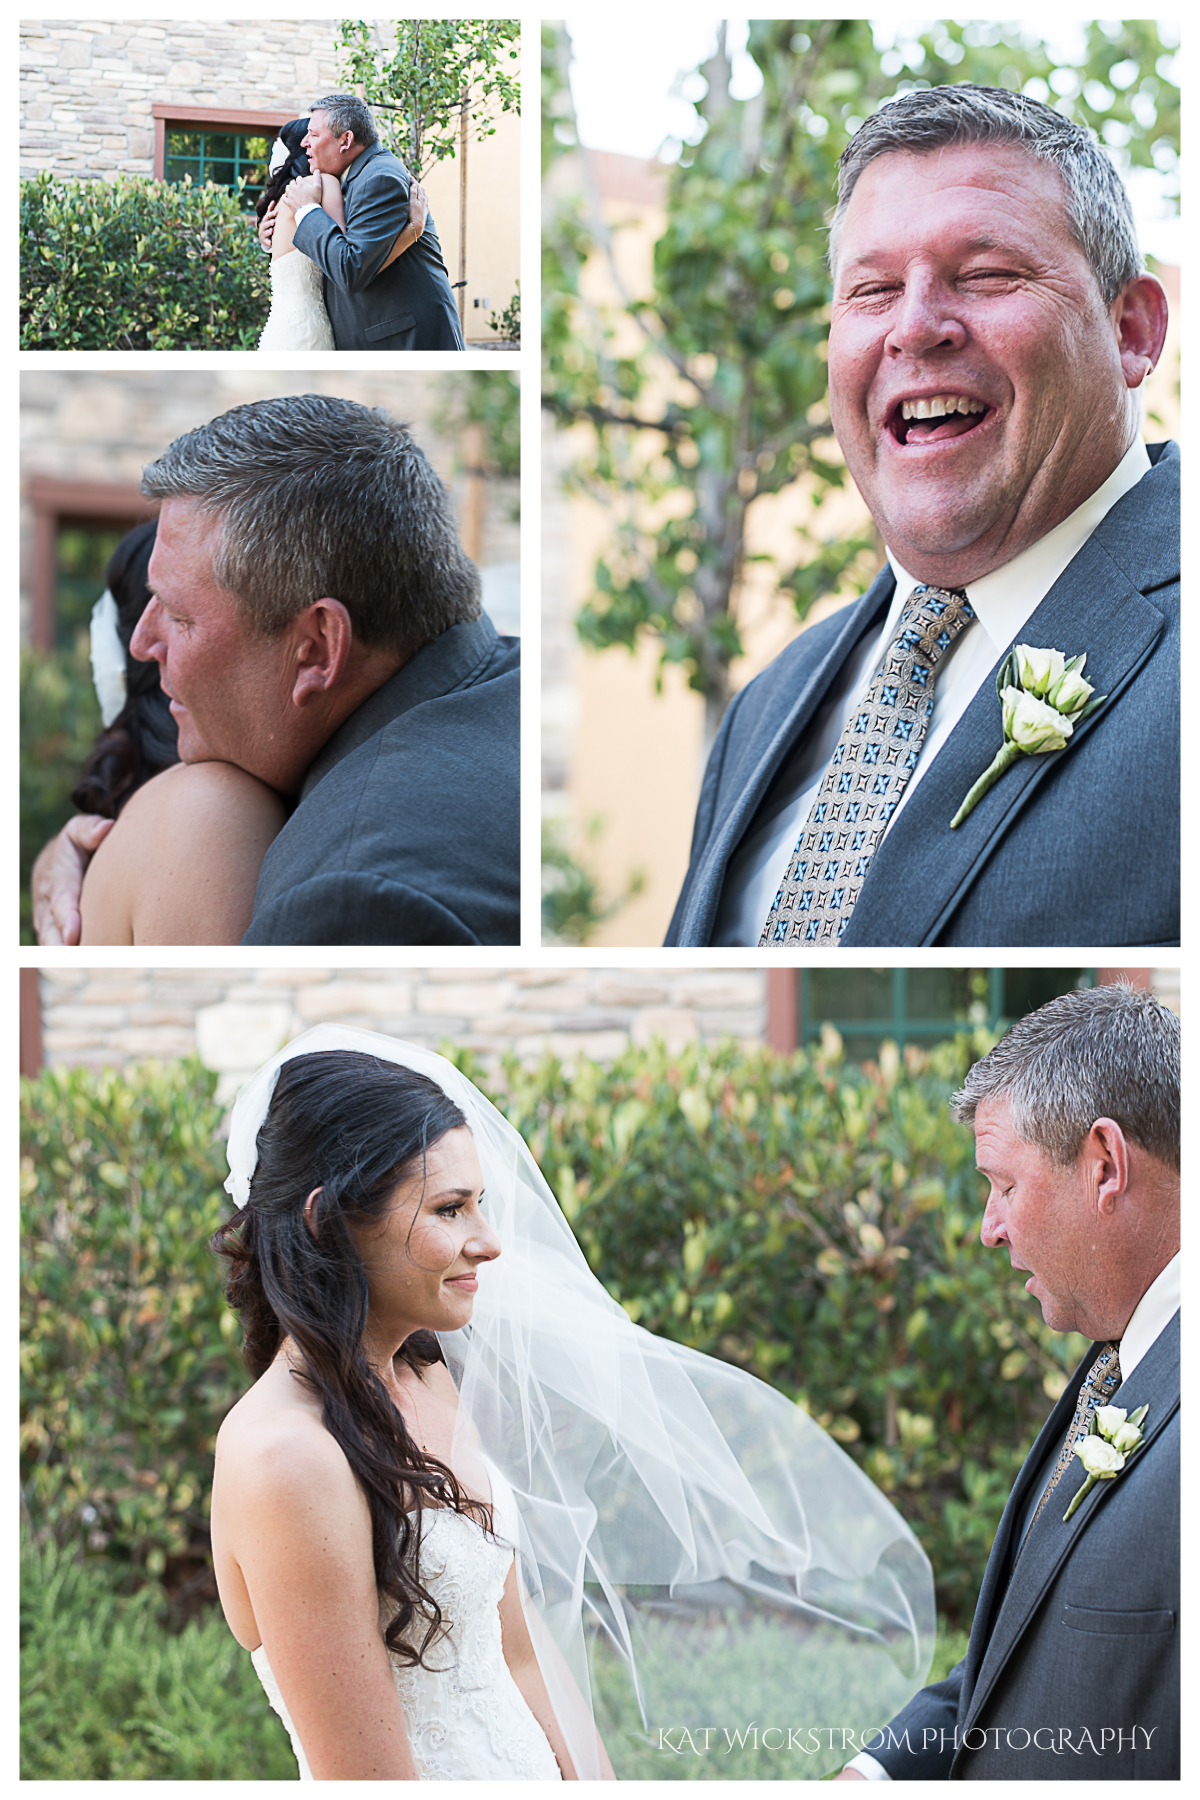 The father of the bride sees her for the first time